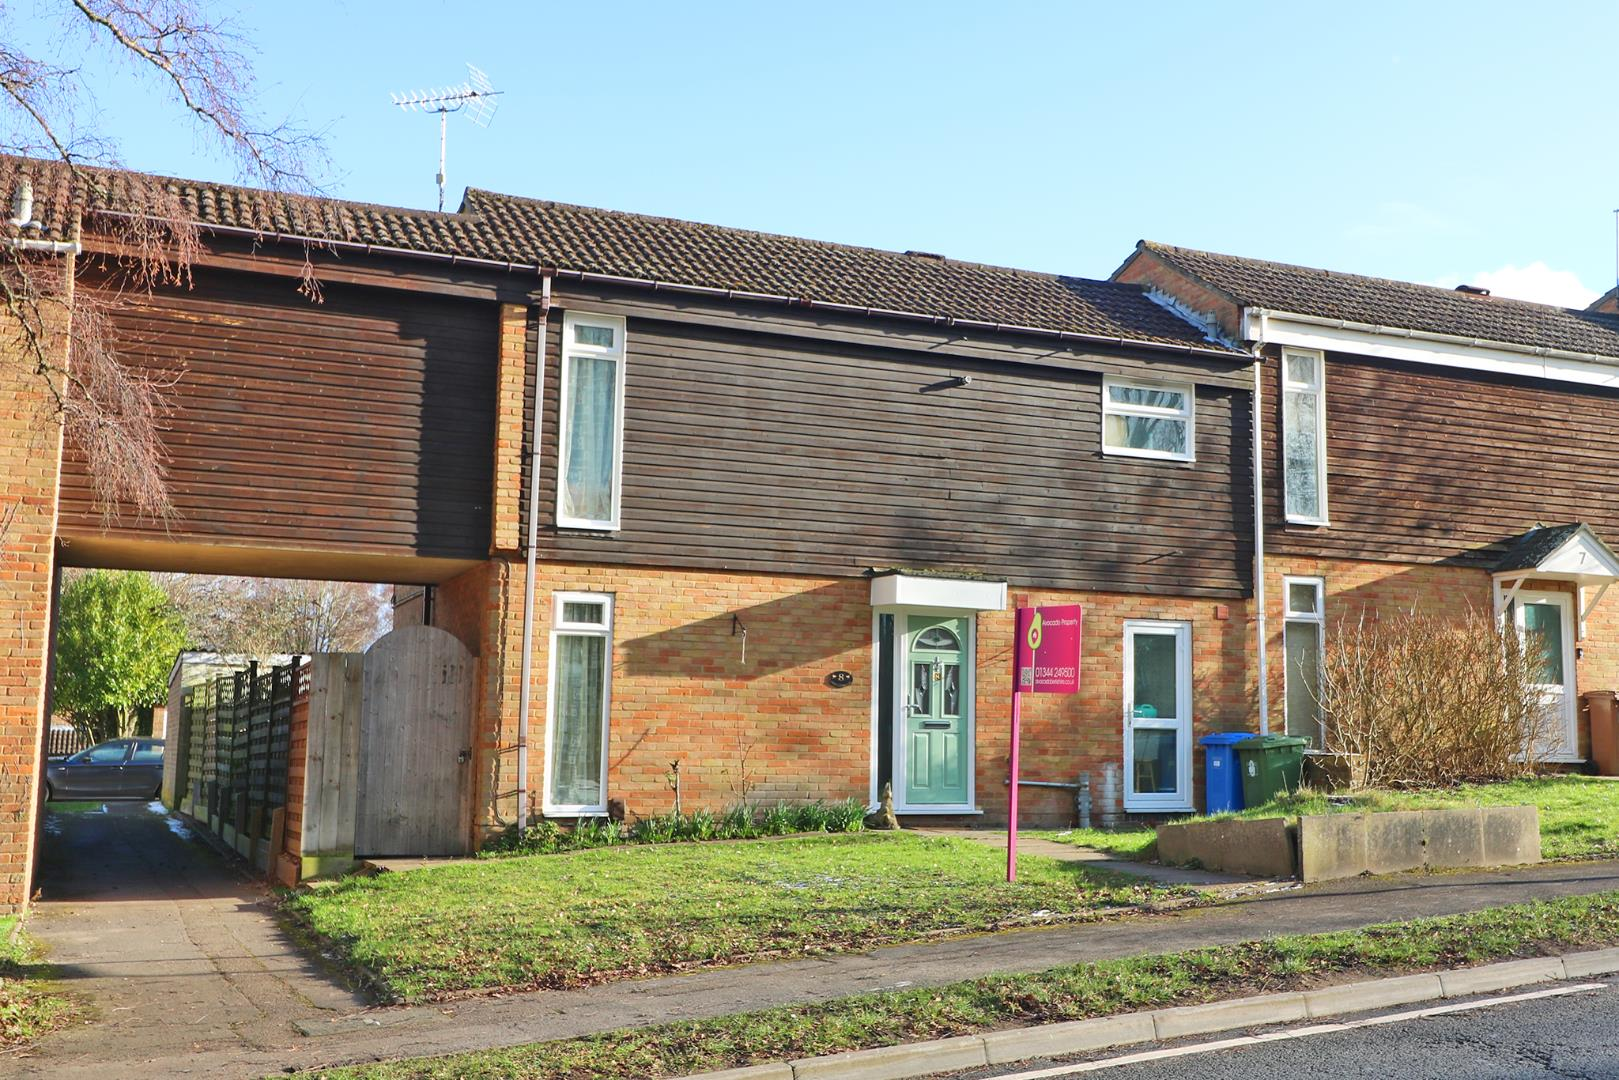 4 bed terraced for sale in Hanworth - Property Image 1